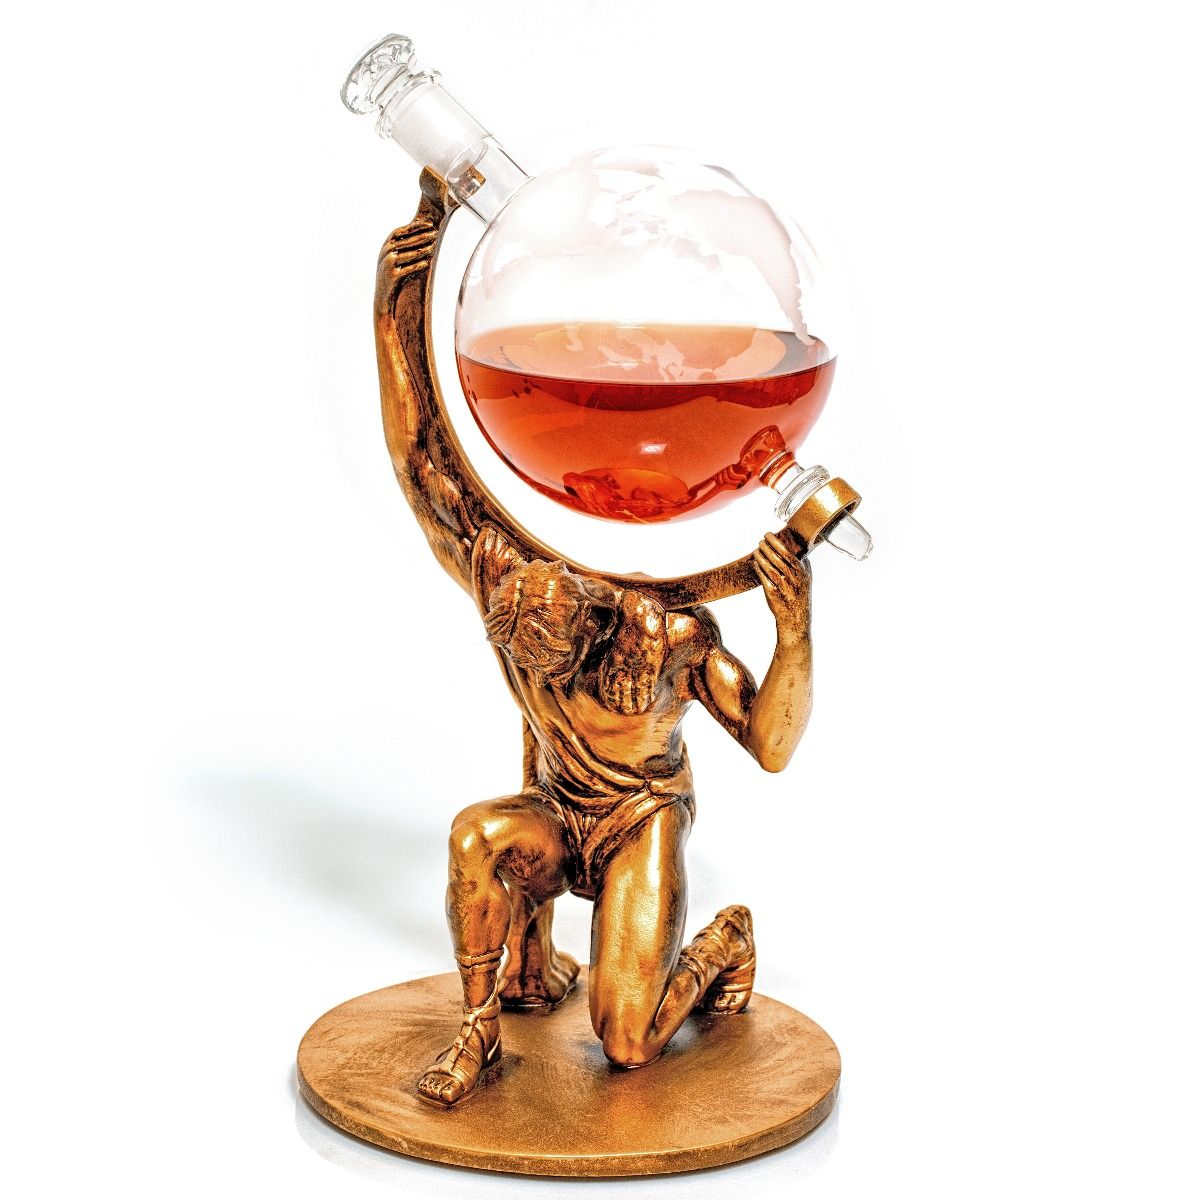 Atlas Decanter, a bearer of worldly spirits globe liquor decanter